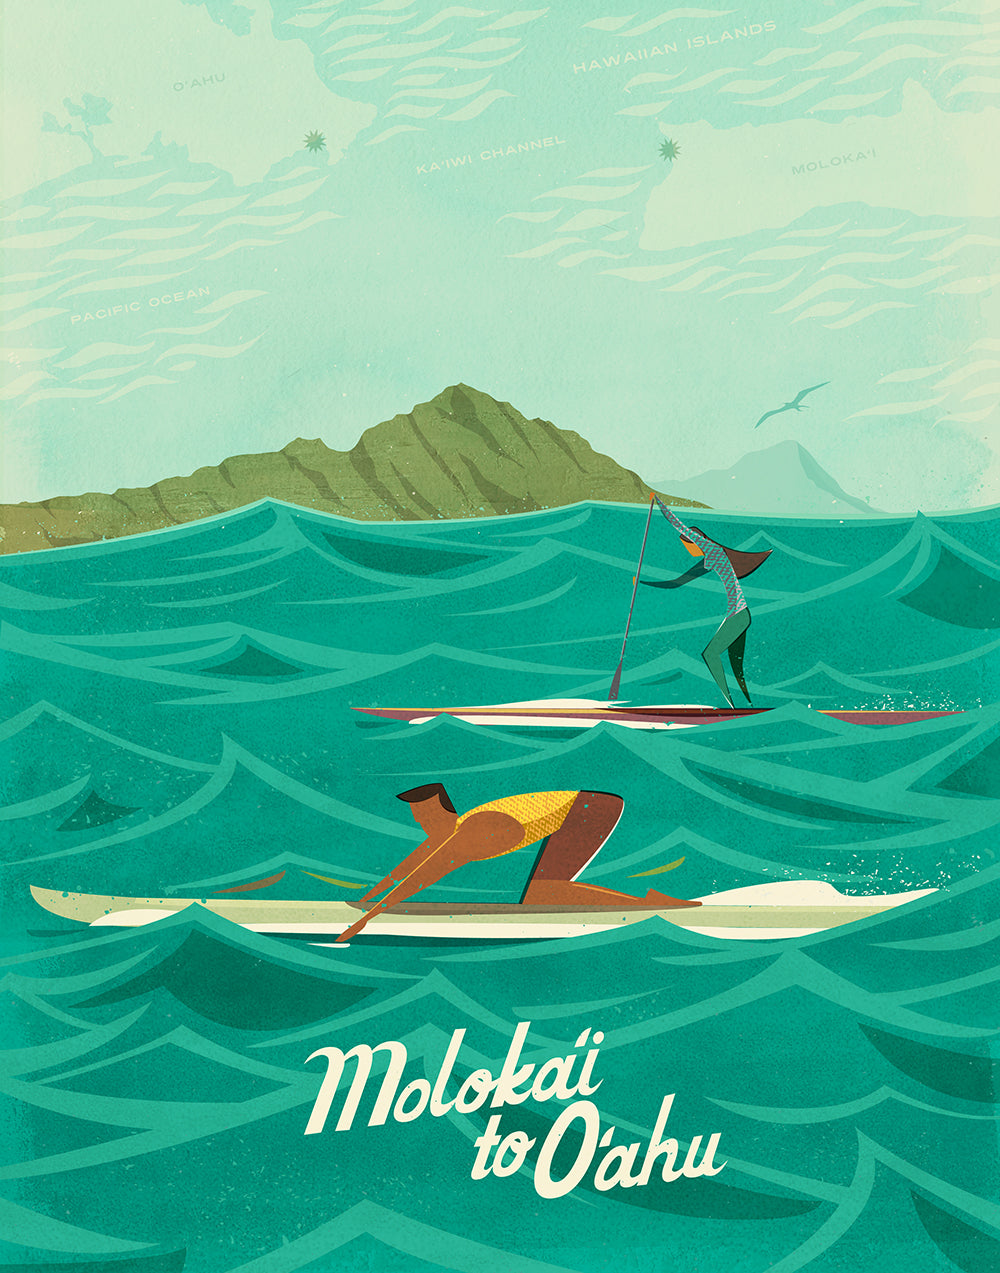 Hawaii Artist Nick Kuchar's Molokai2Oahu Vintage-Inspired Race Art